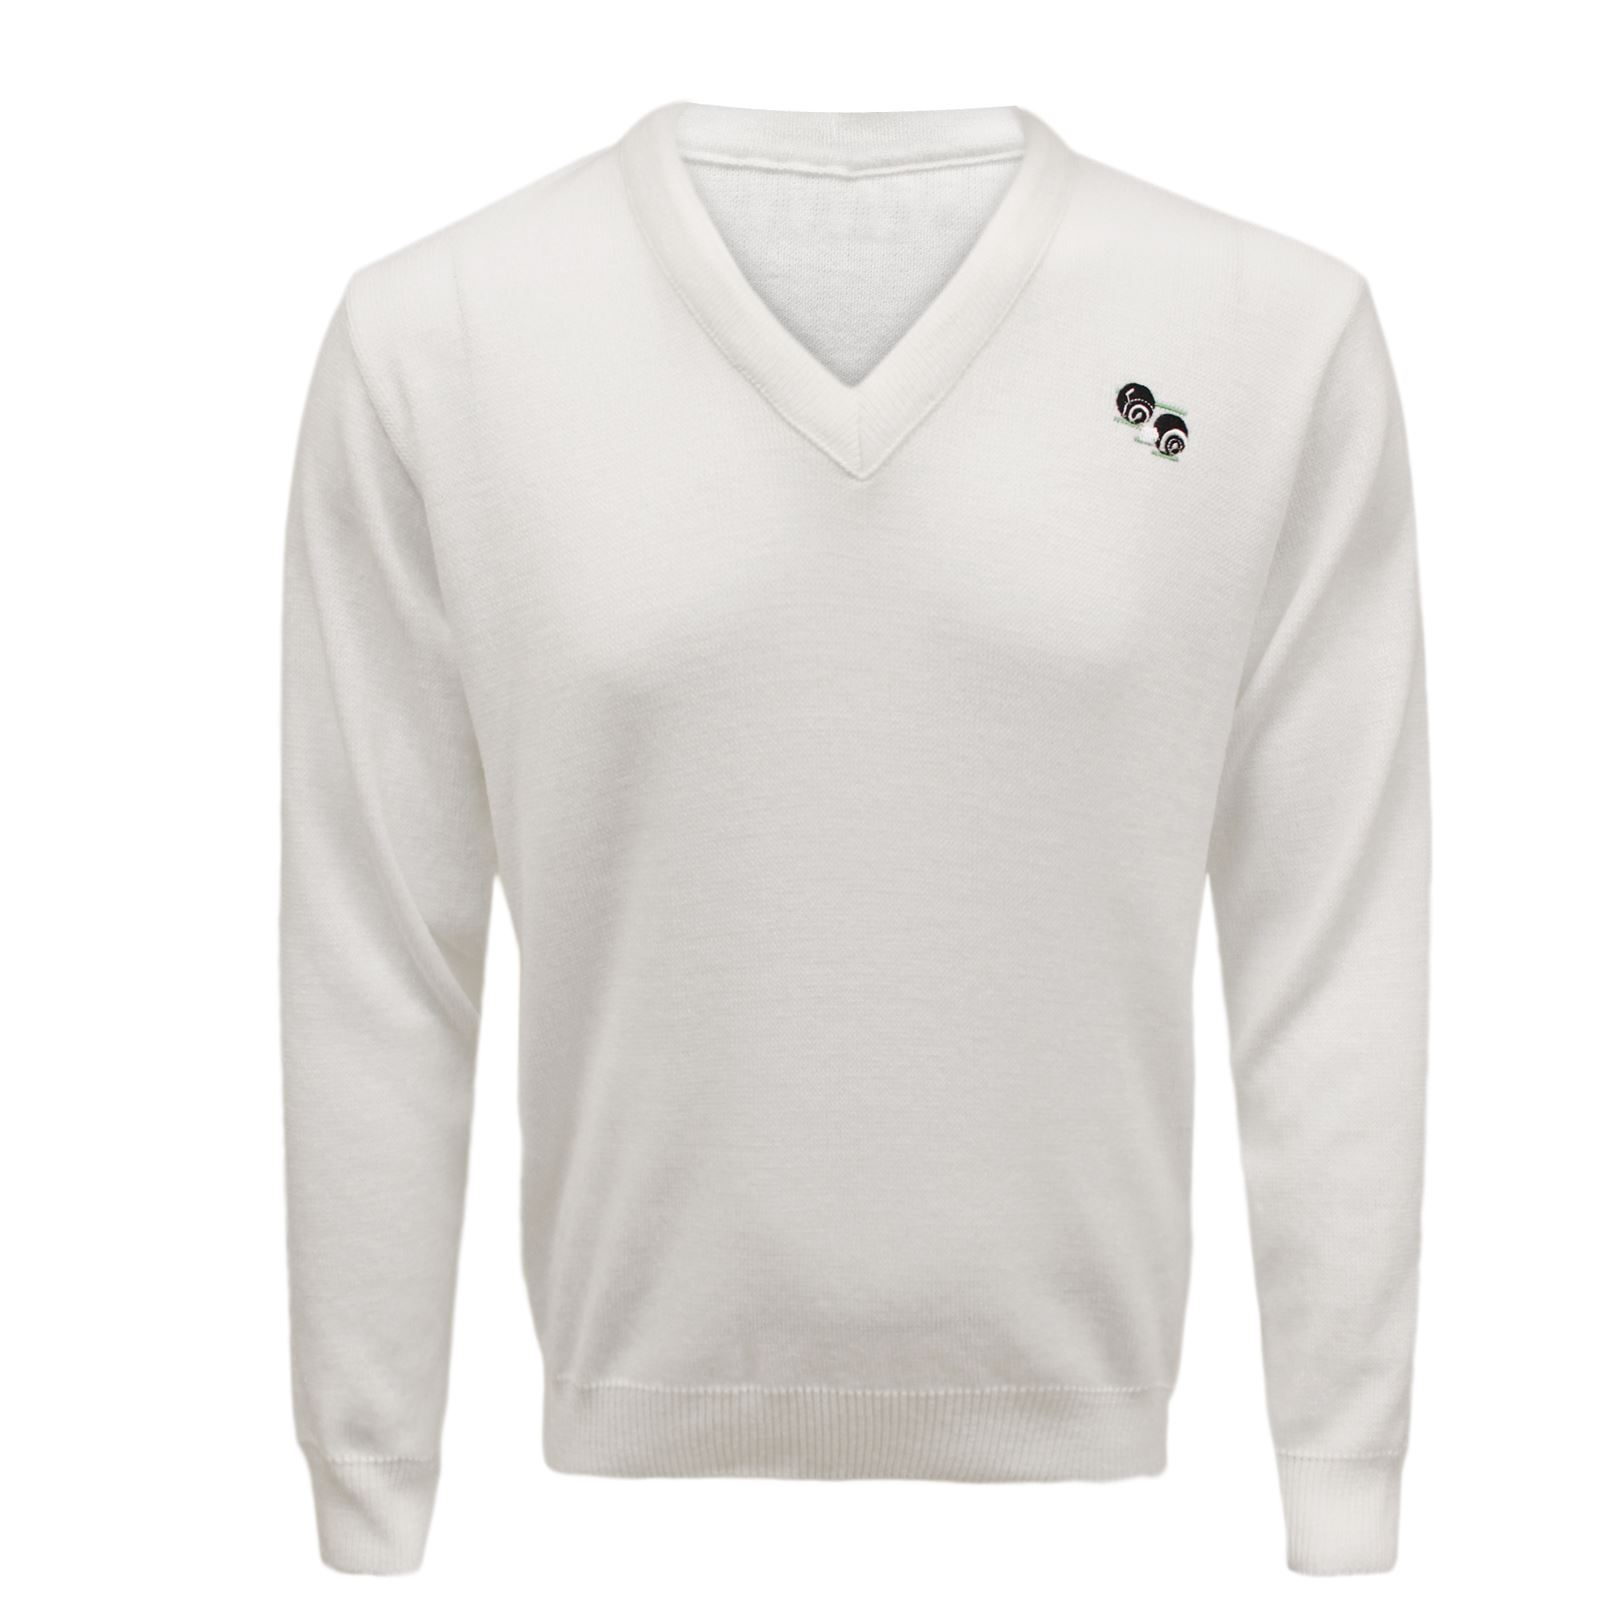 New White Sweater 21